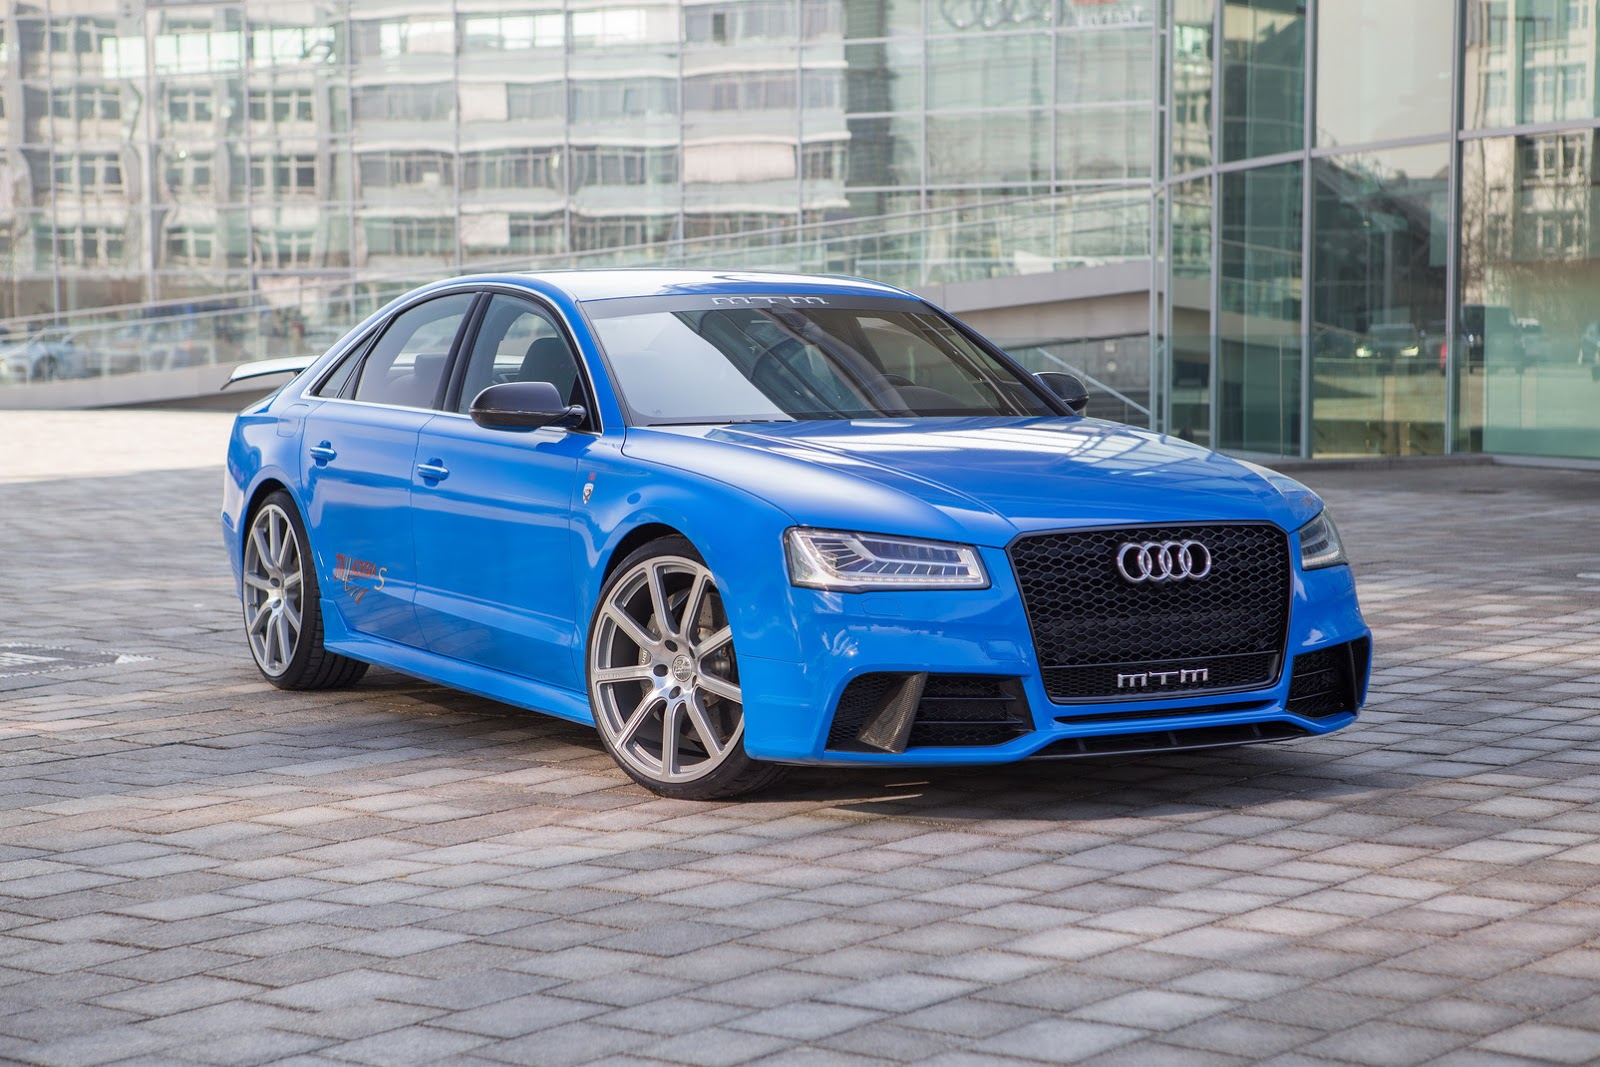 2015 <b>Audi S8 MTM</b> Talladega S - 802hp - Exterior and Interior ...